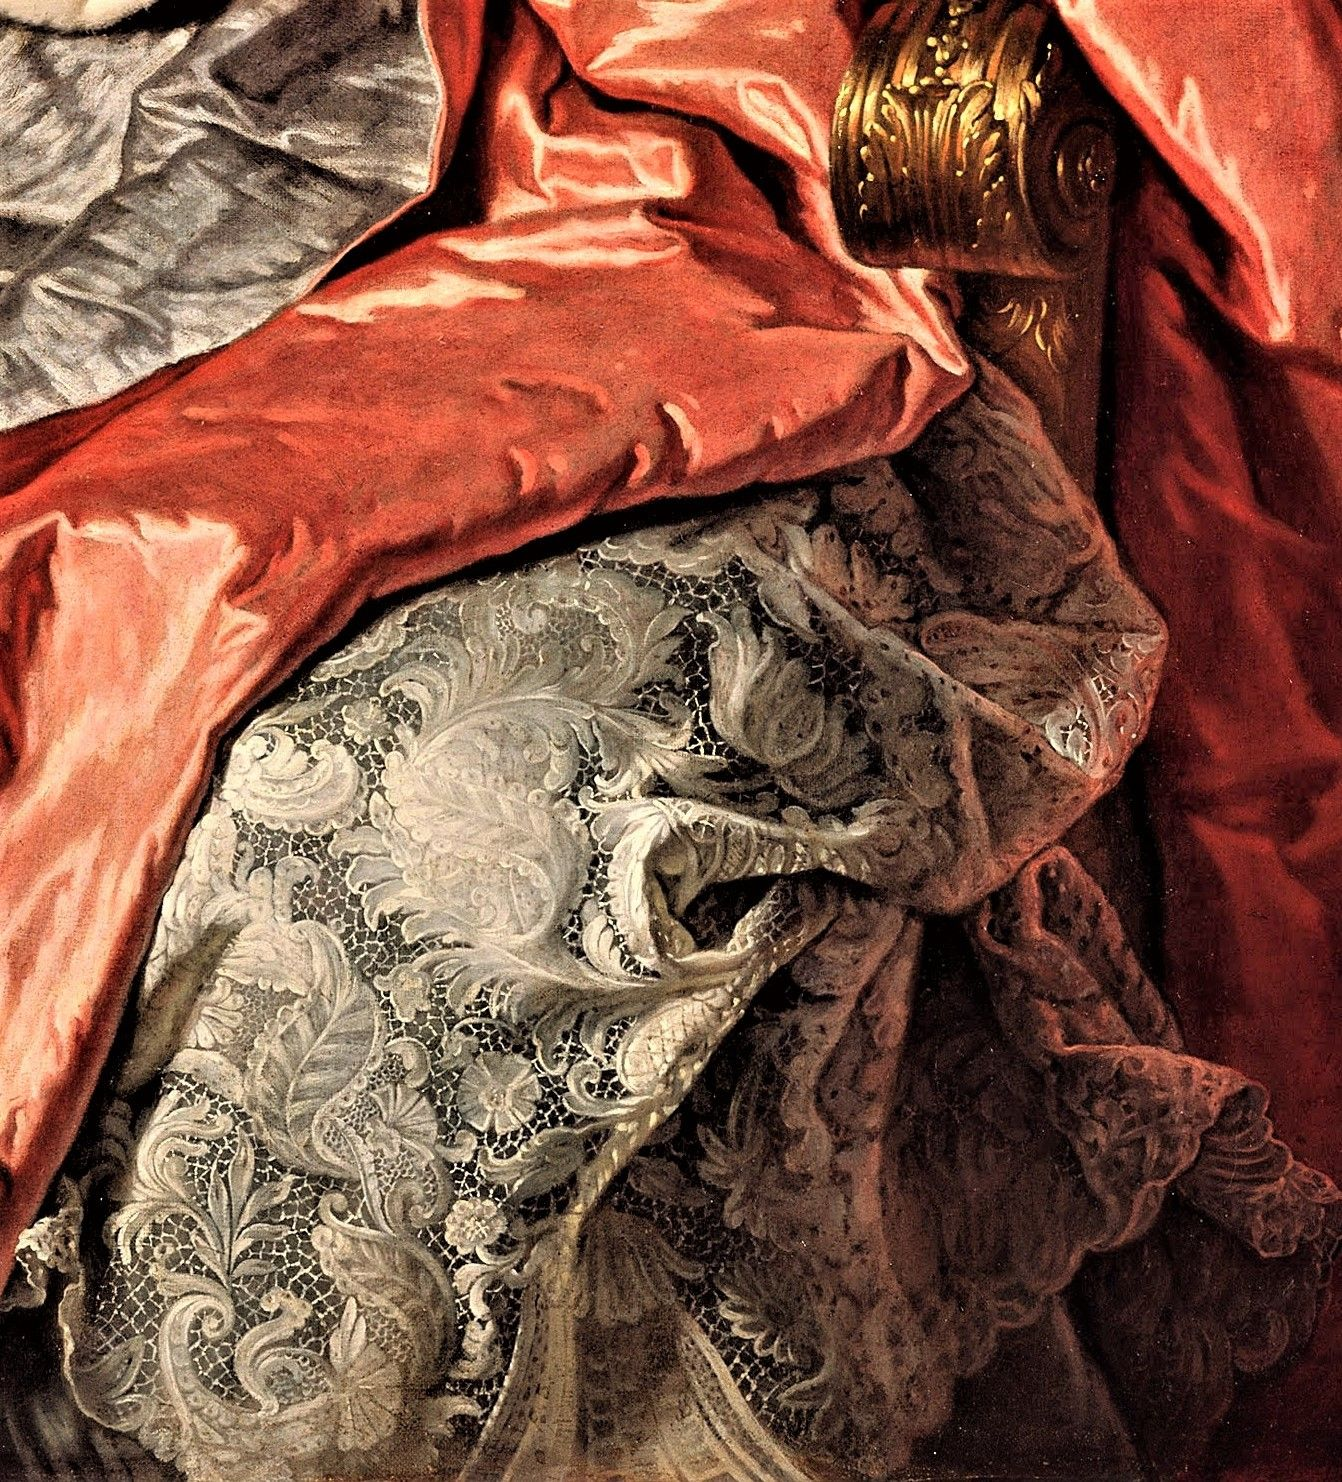 Charles De Saint Albin By Hyacinthe Rigaud Great Works Of Art Old Dresses Classic Art